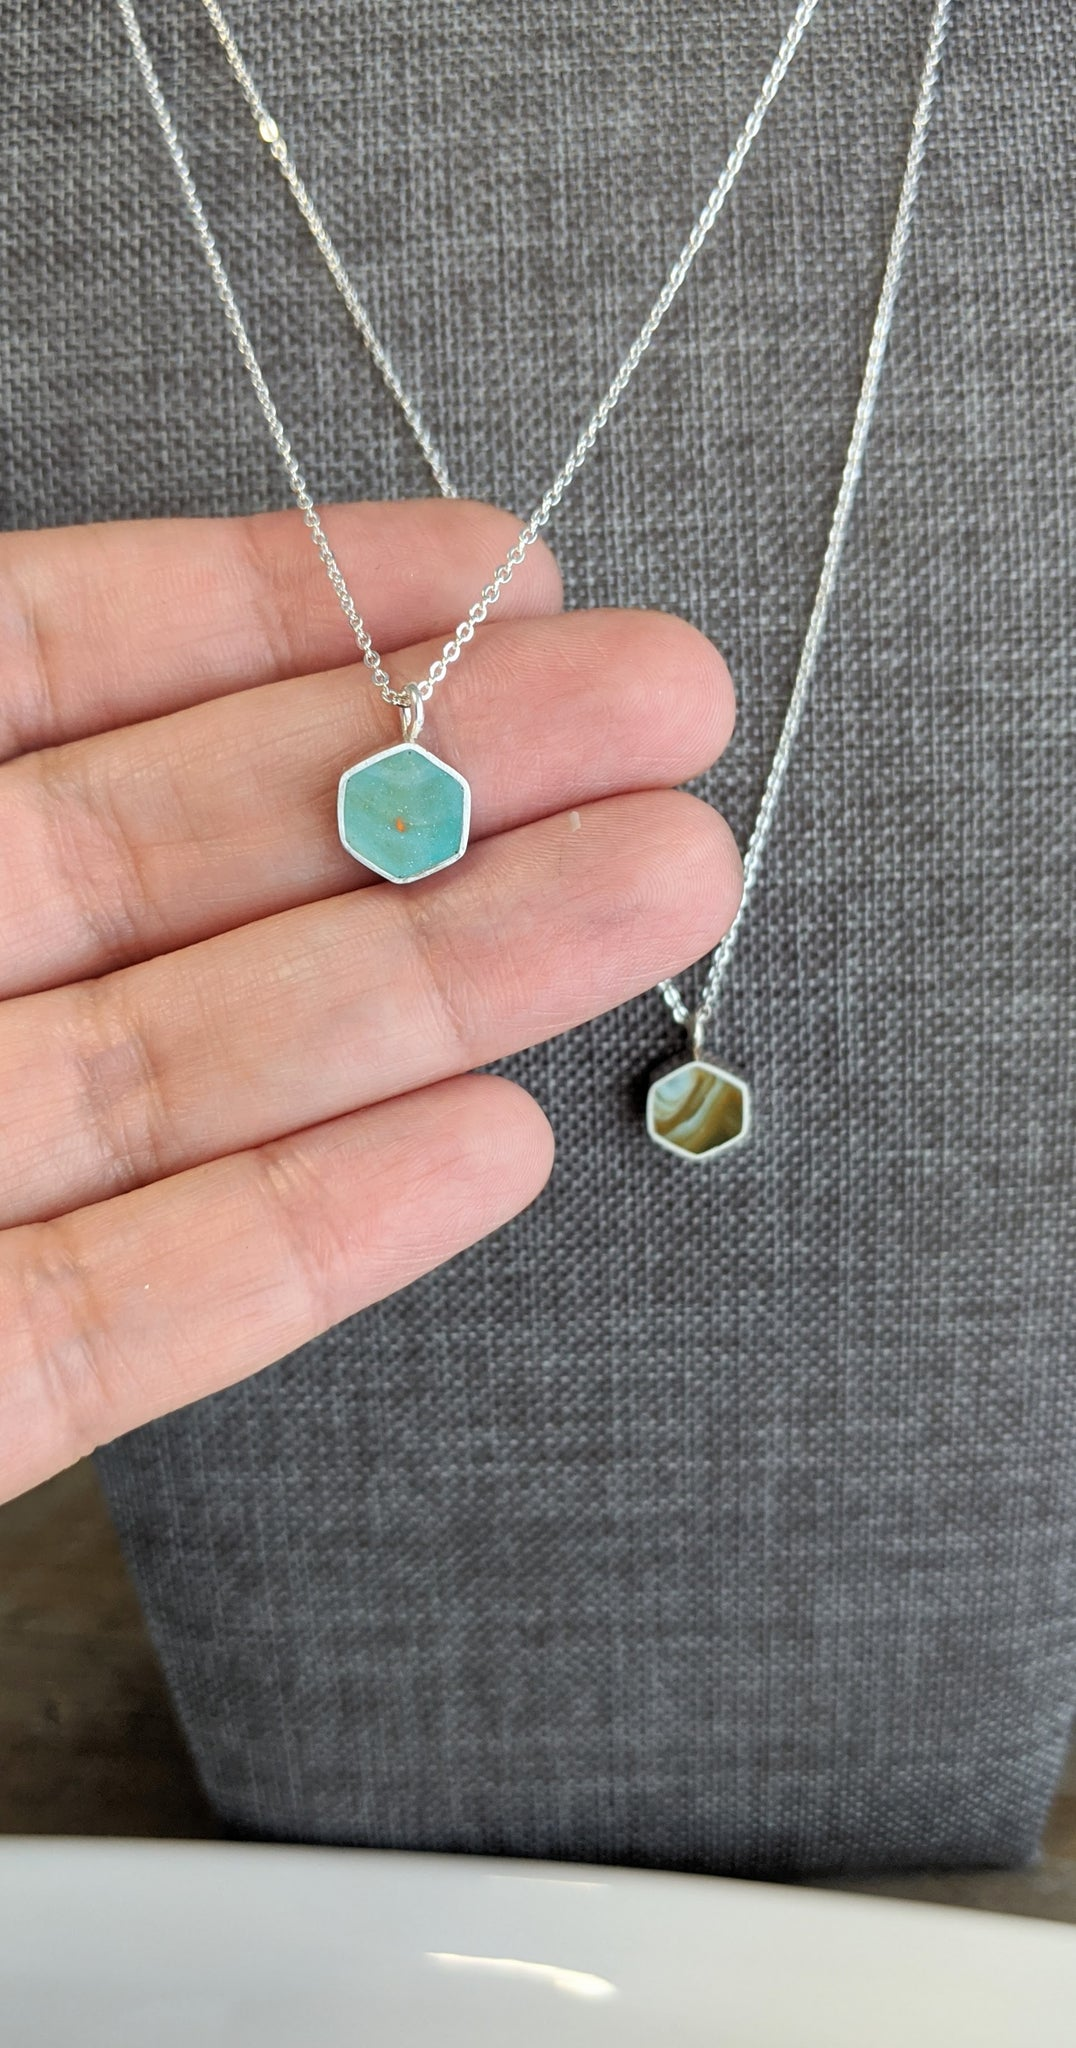 Mini Hexagon Resin and Sterling Silver Necklaces